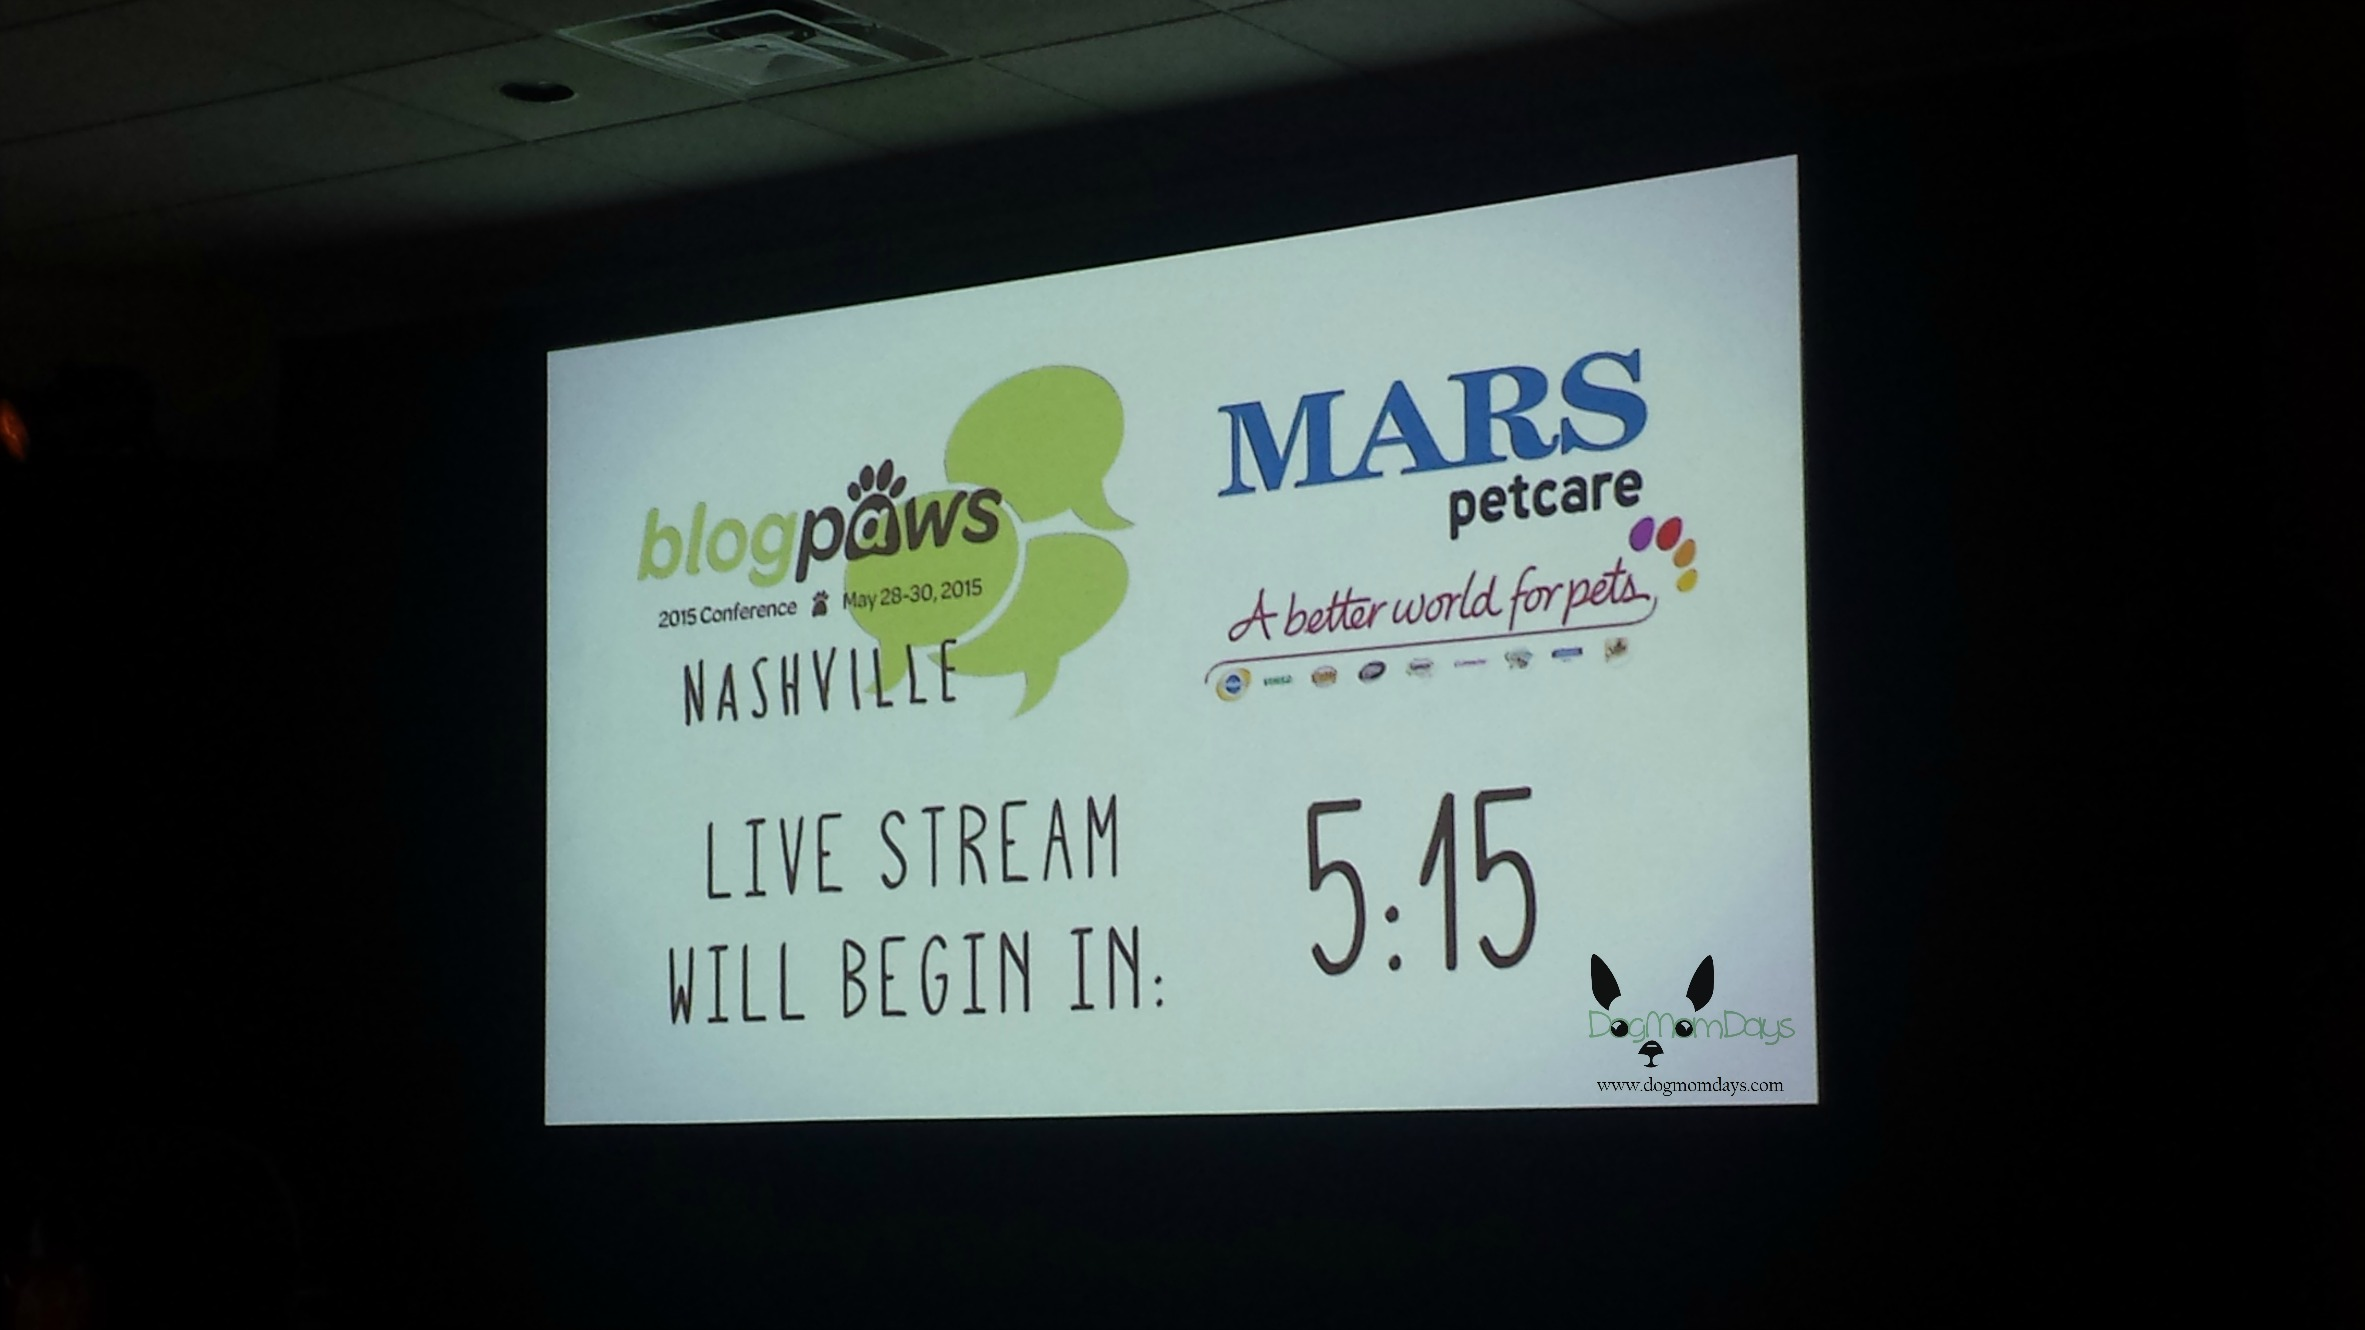 The opening remarks were live streamed tonight!